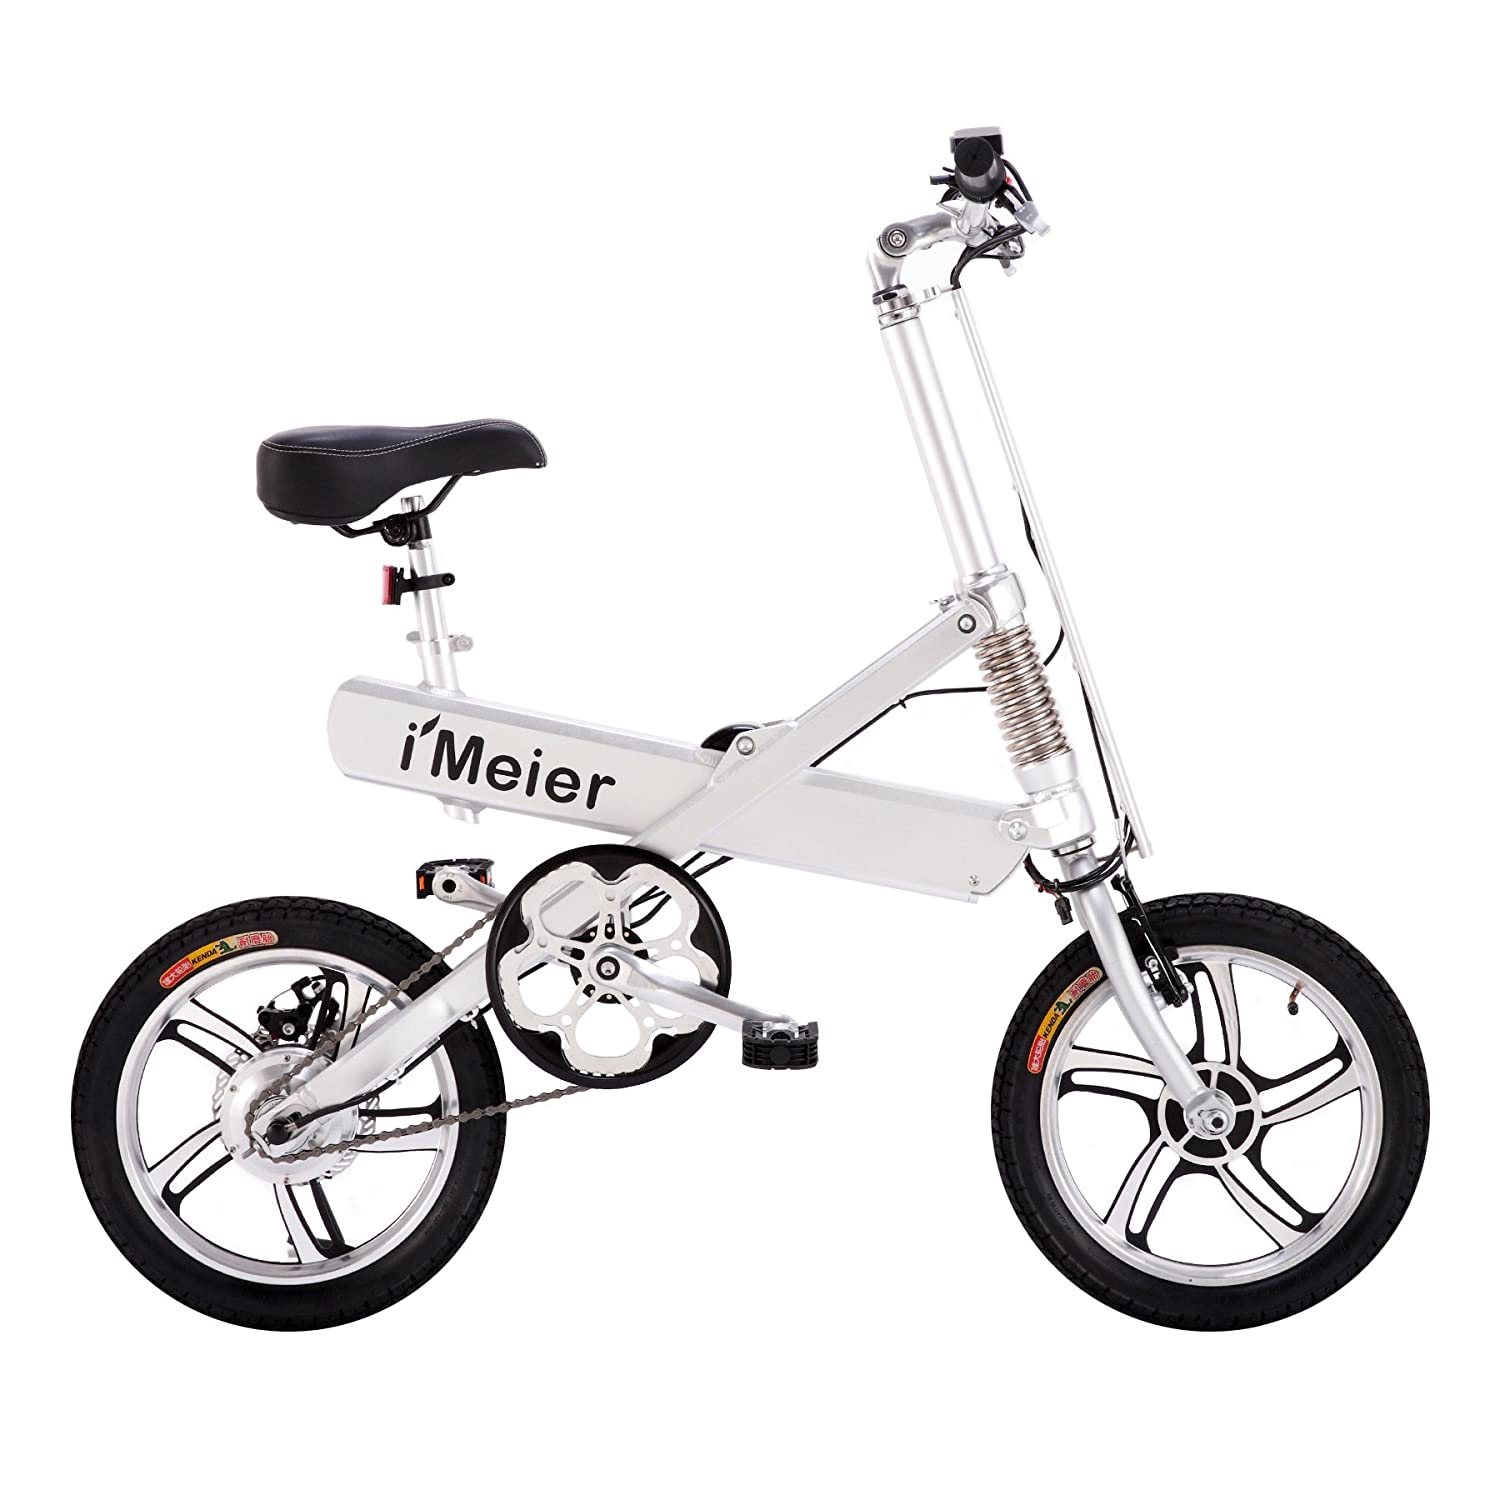 217b9cf31fe Amazon.com : RASSINÉ Electric Bicycle Extra Long-Range Riding, Foldable  eBike, Optional Pedal Assisted, Aluminum Alloy Electric Bike by iMEIER :  Sports & ...